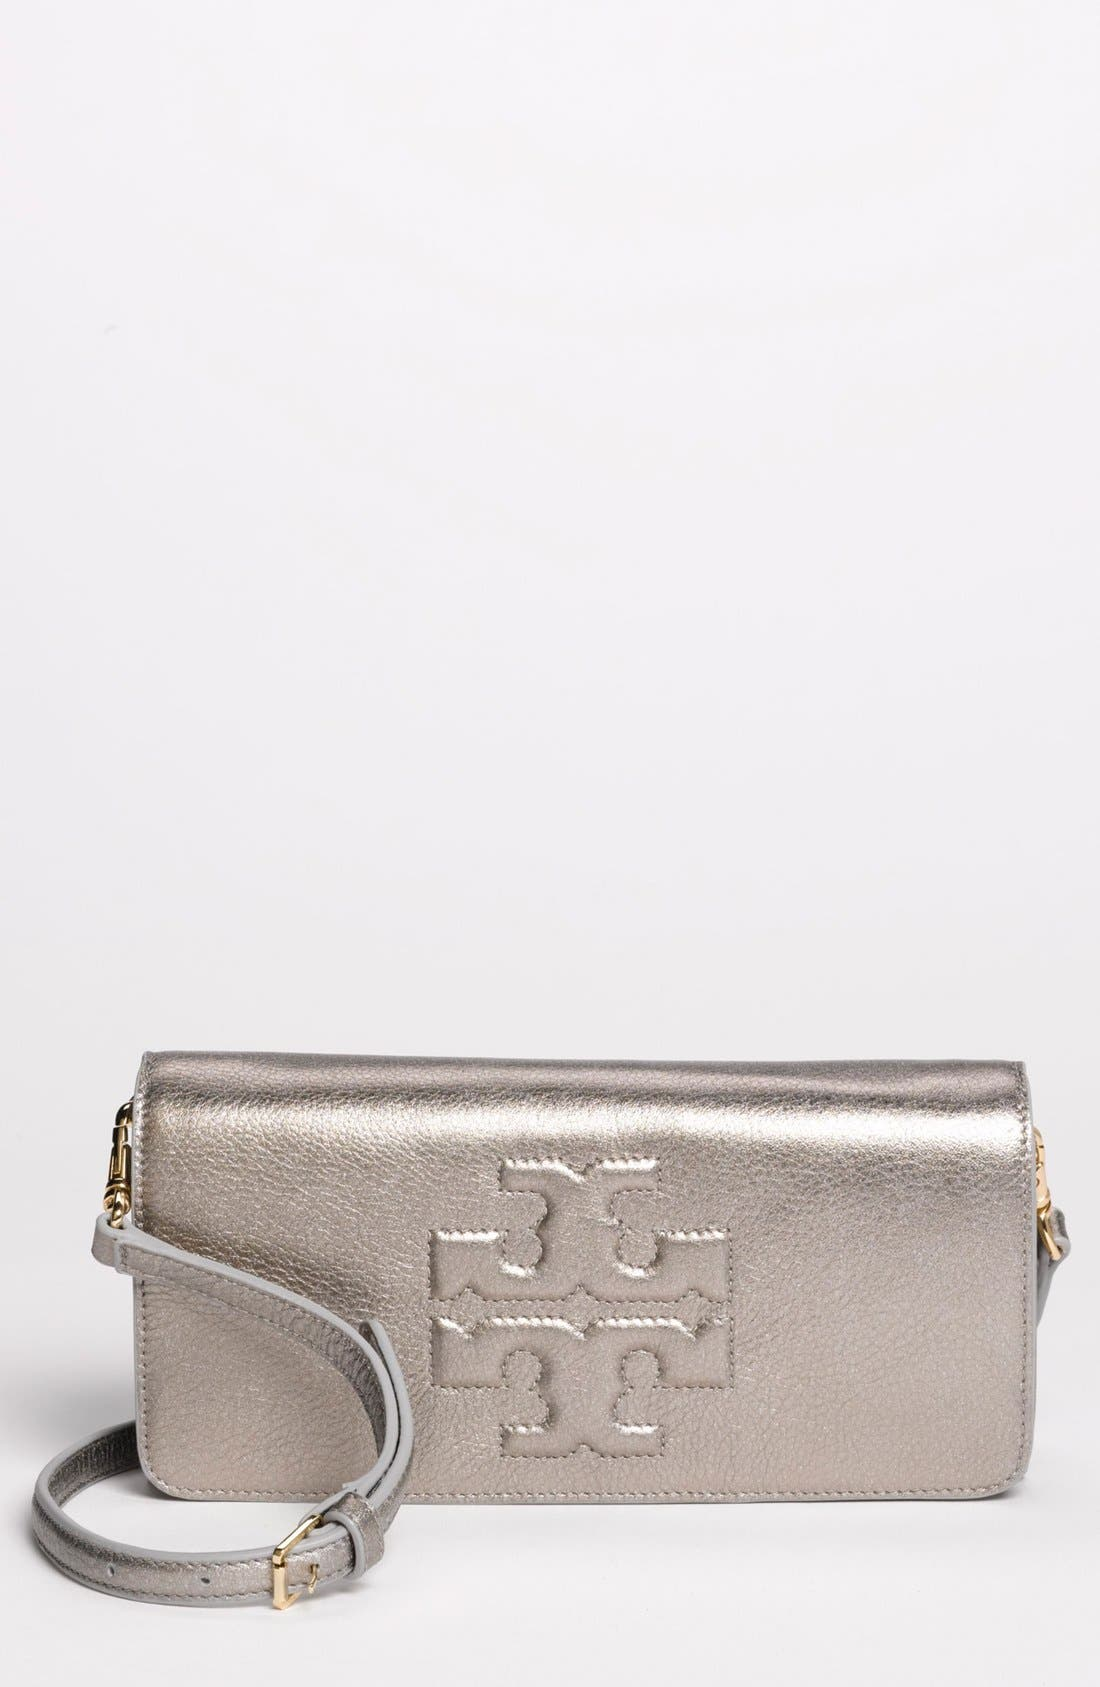 Alternate Image 1 Selected - Tory Burch 'Thea Bombe' Metallic Leather Clutch